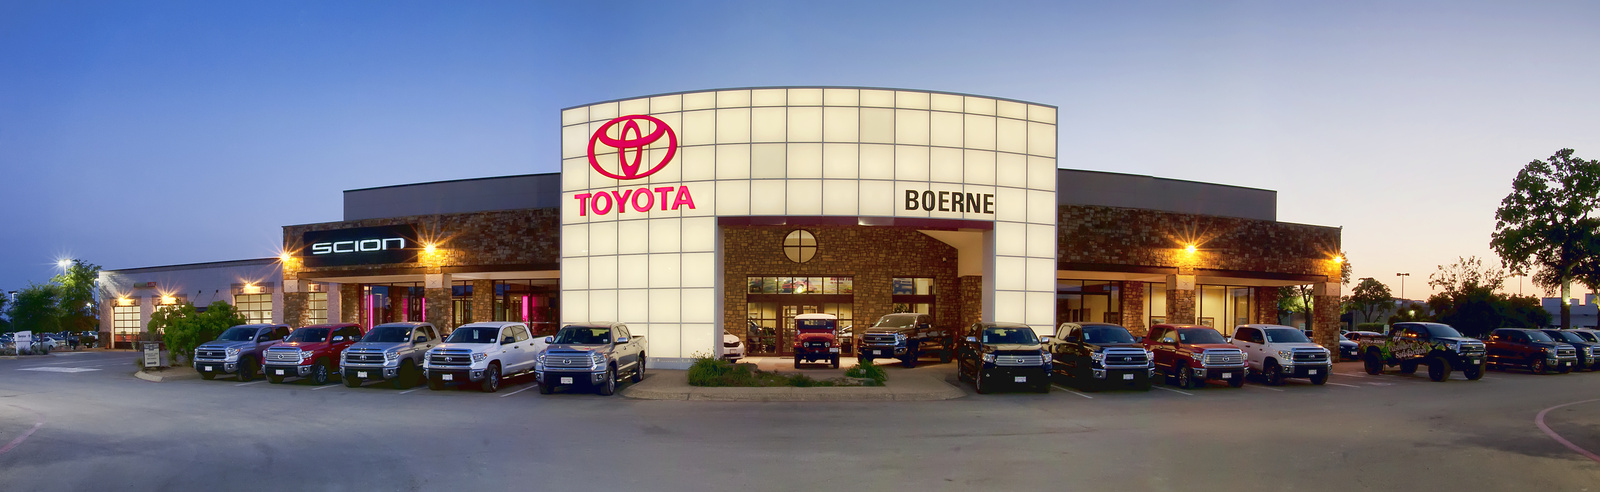 San Antonio Gmc Service >> Toyota of Boerne - Boerne, TX: Read Consumer reviews, Browse Used and New Cars for Sale